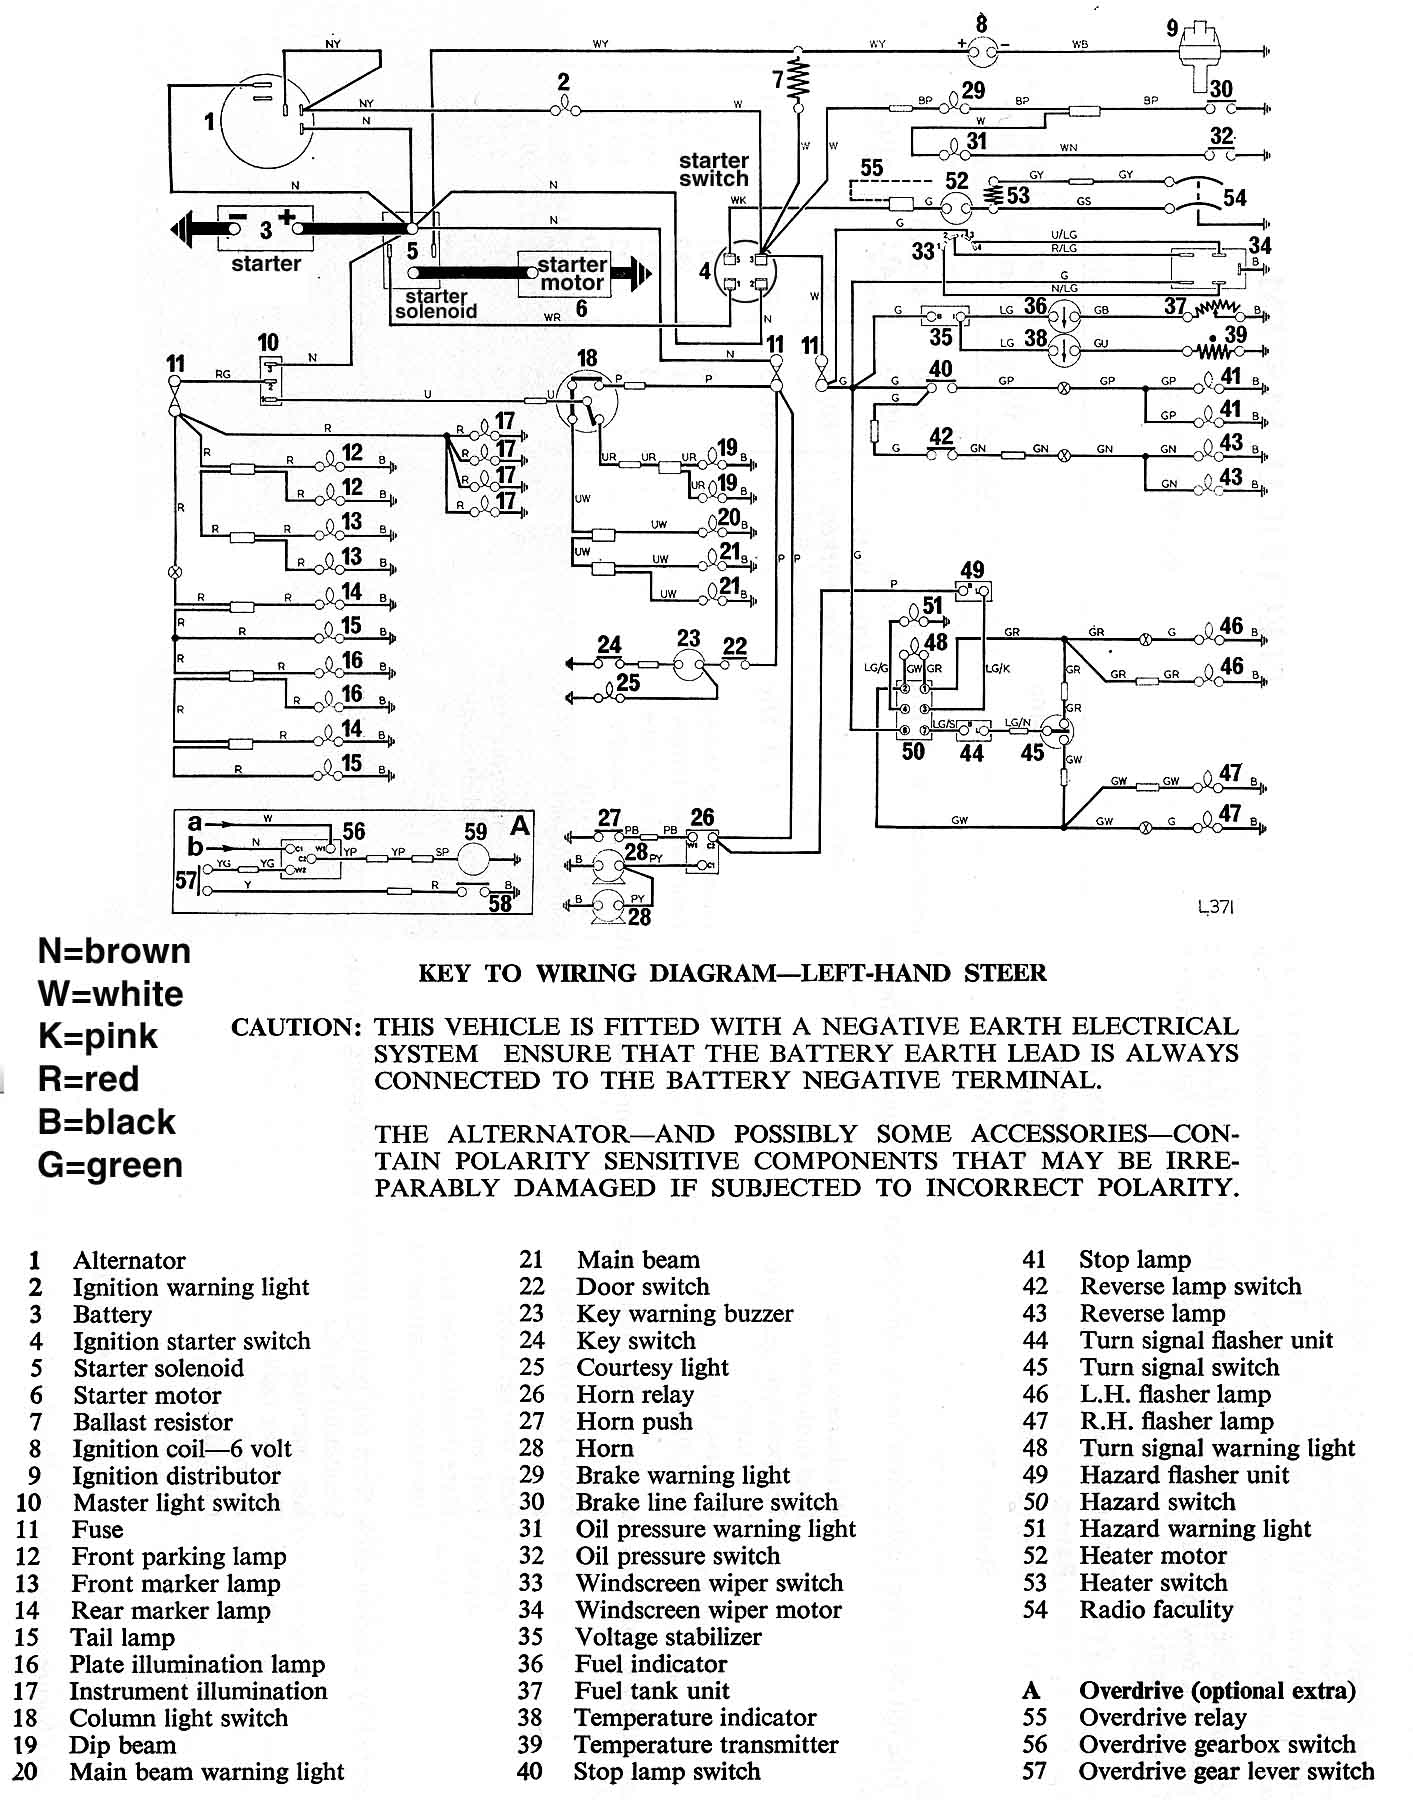 15 Circuit Wiring Harness Diy Not Lossing Diagram Homemade Volt Solenoid Library Rh 39 Budoshop4you De Truck